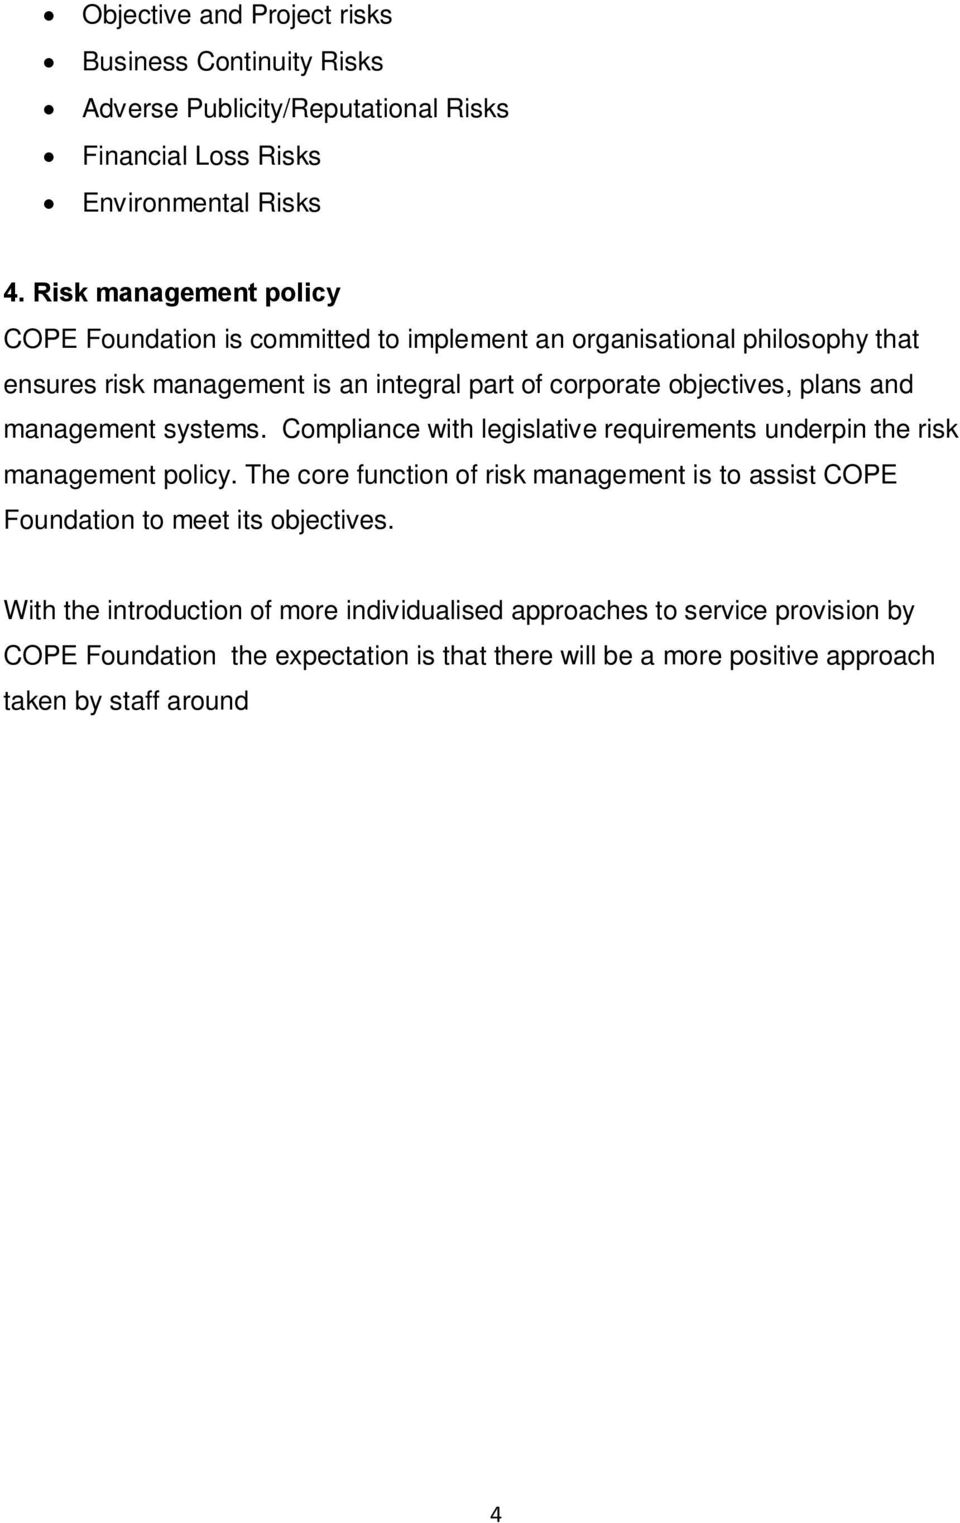 Compliance with legislative requirements underpin the risk management policy. The core function of risk management is to assist COPE Foundation to meet its objectives.